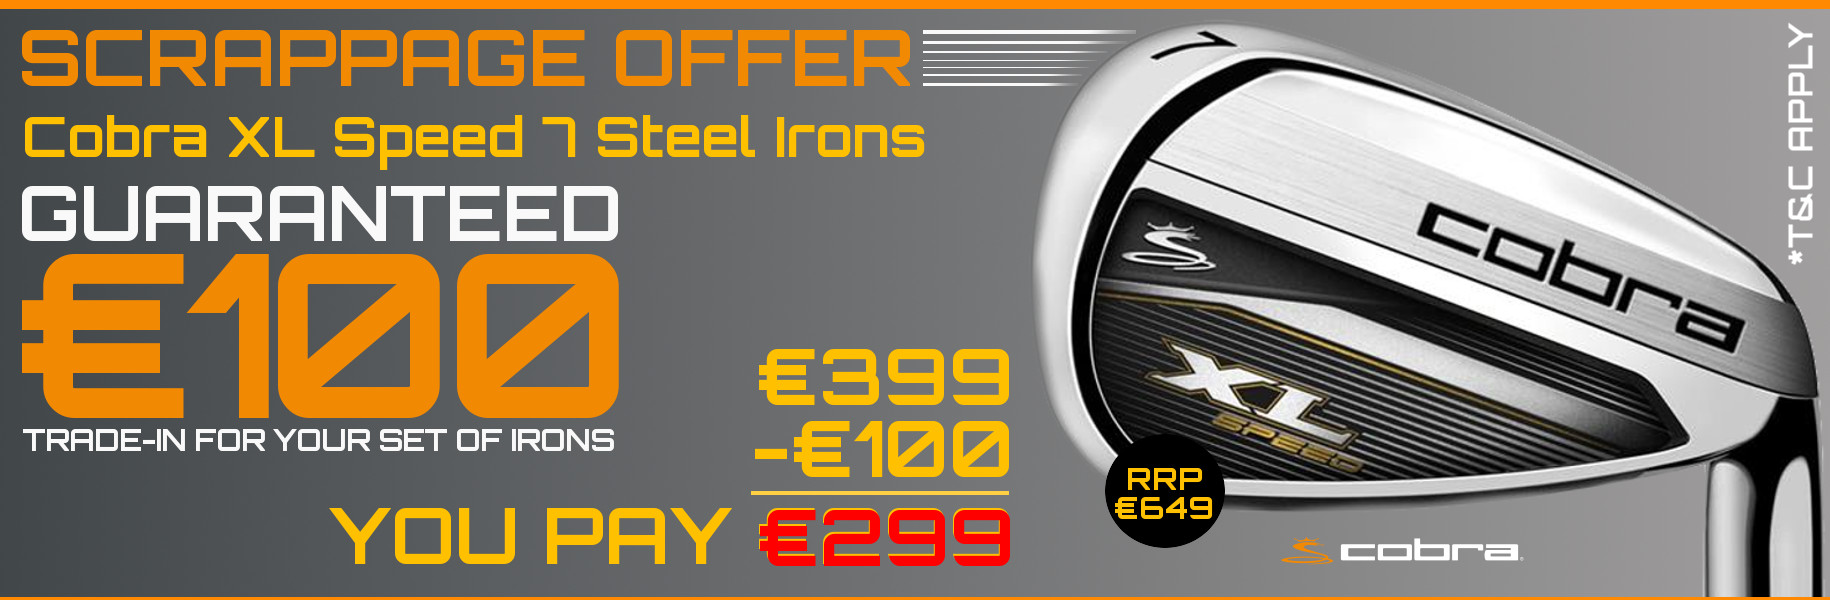 Scrapage Offer - Cobra XL speed Irons save €100